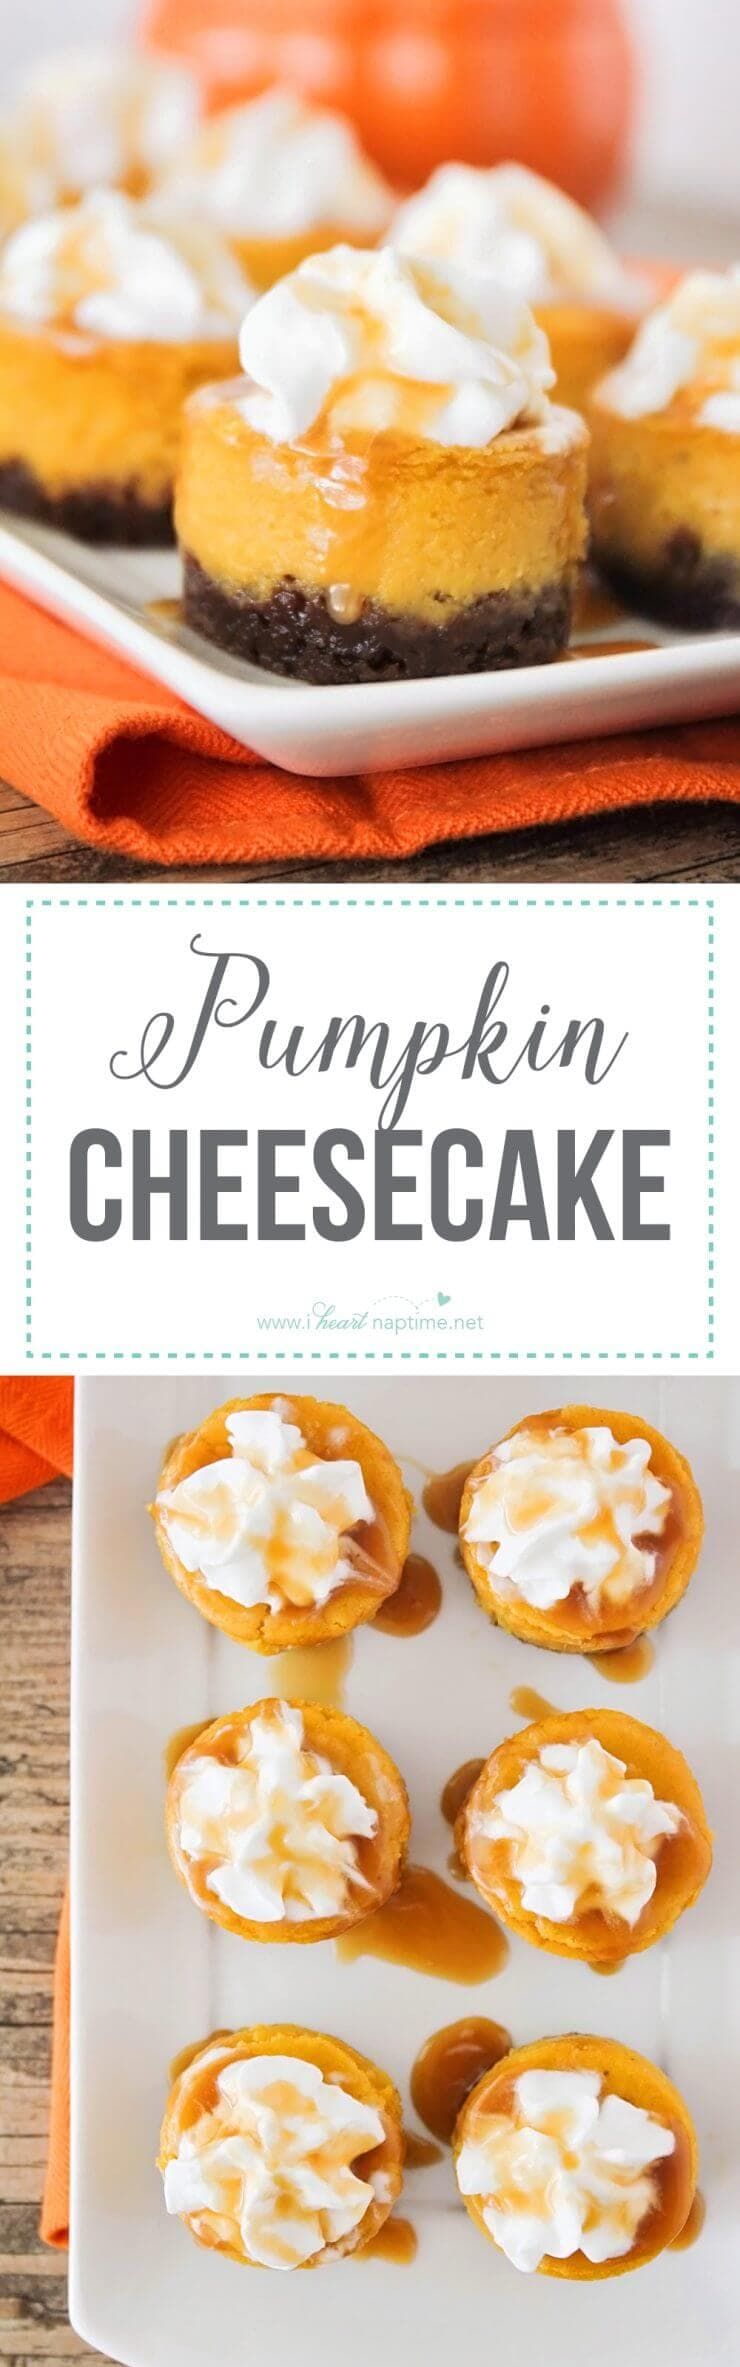 Best Pumpkin Cheesecake Recipe I Heart Naptime